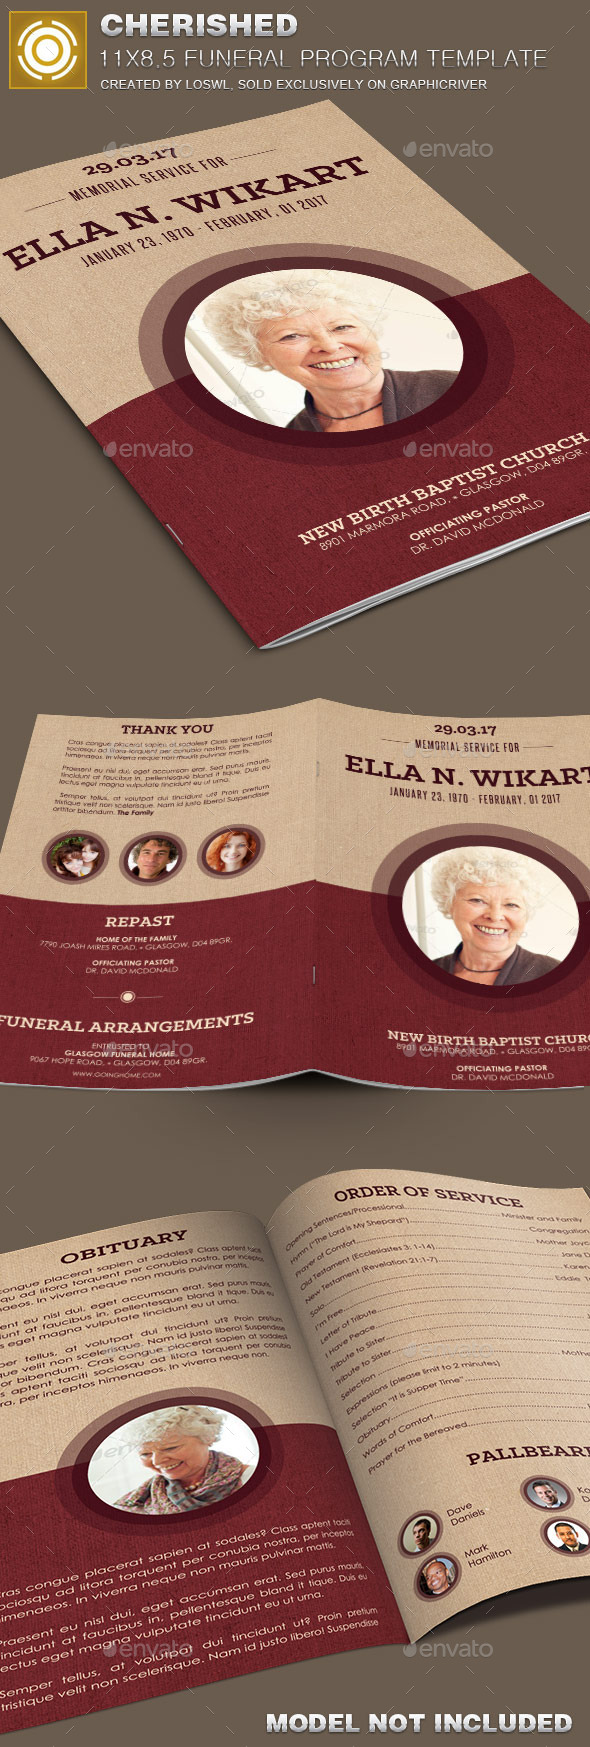 GraphicRiver Cherished Funeral Program Template 10073526